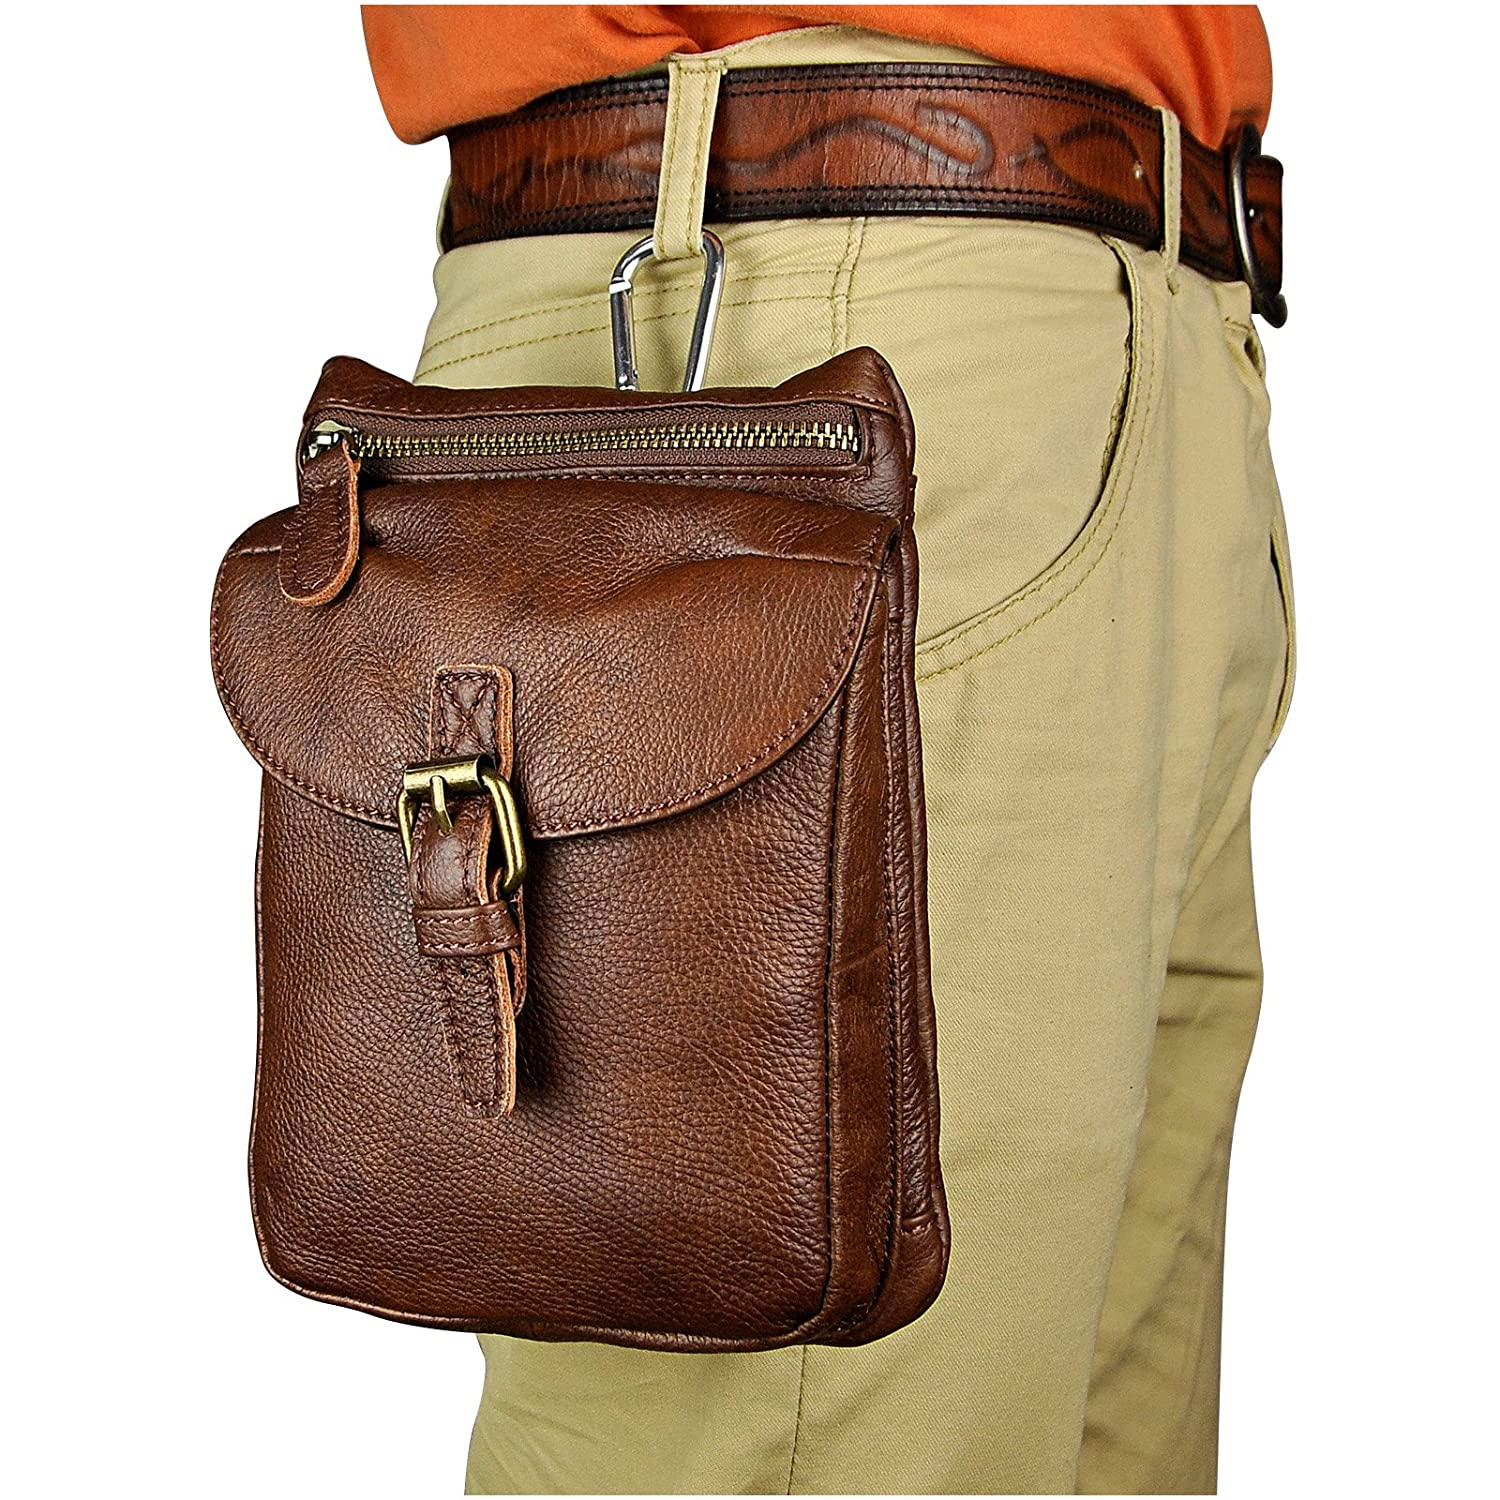 Le'aokuu Mens Genuine Leather Coffee Fanny Small Messenger Shoulder Satchel Waist Bag Pack 2808 coffee